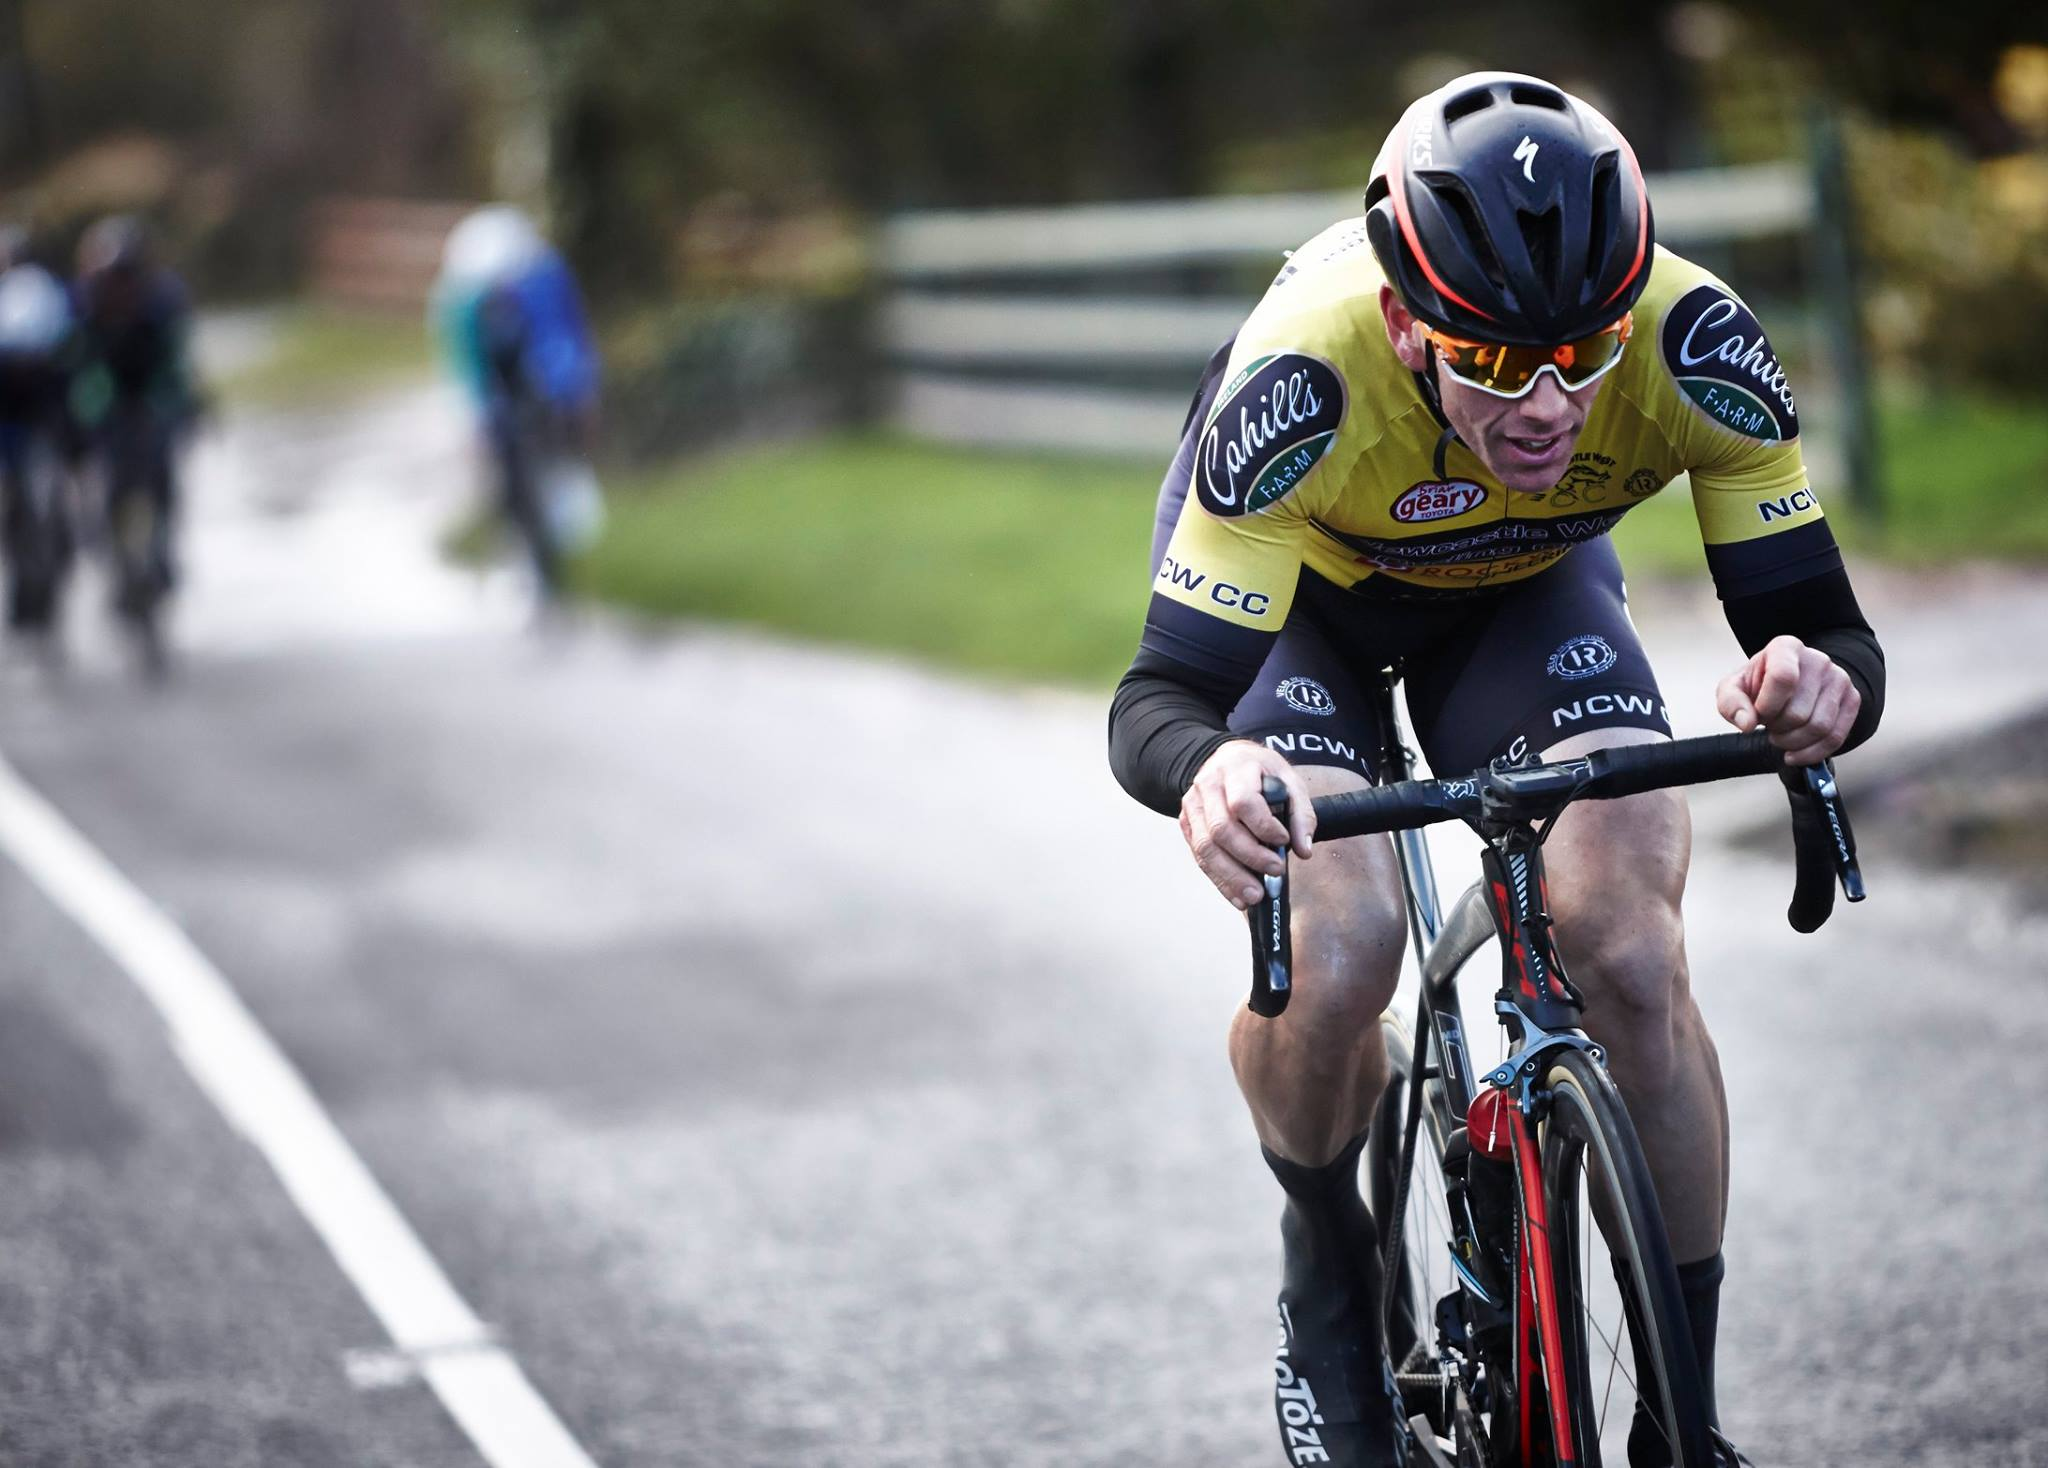 The training regime turning once overweight hurler into top cyclist ...